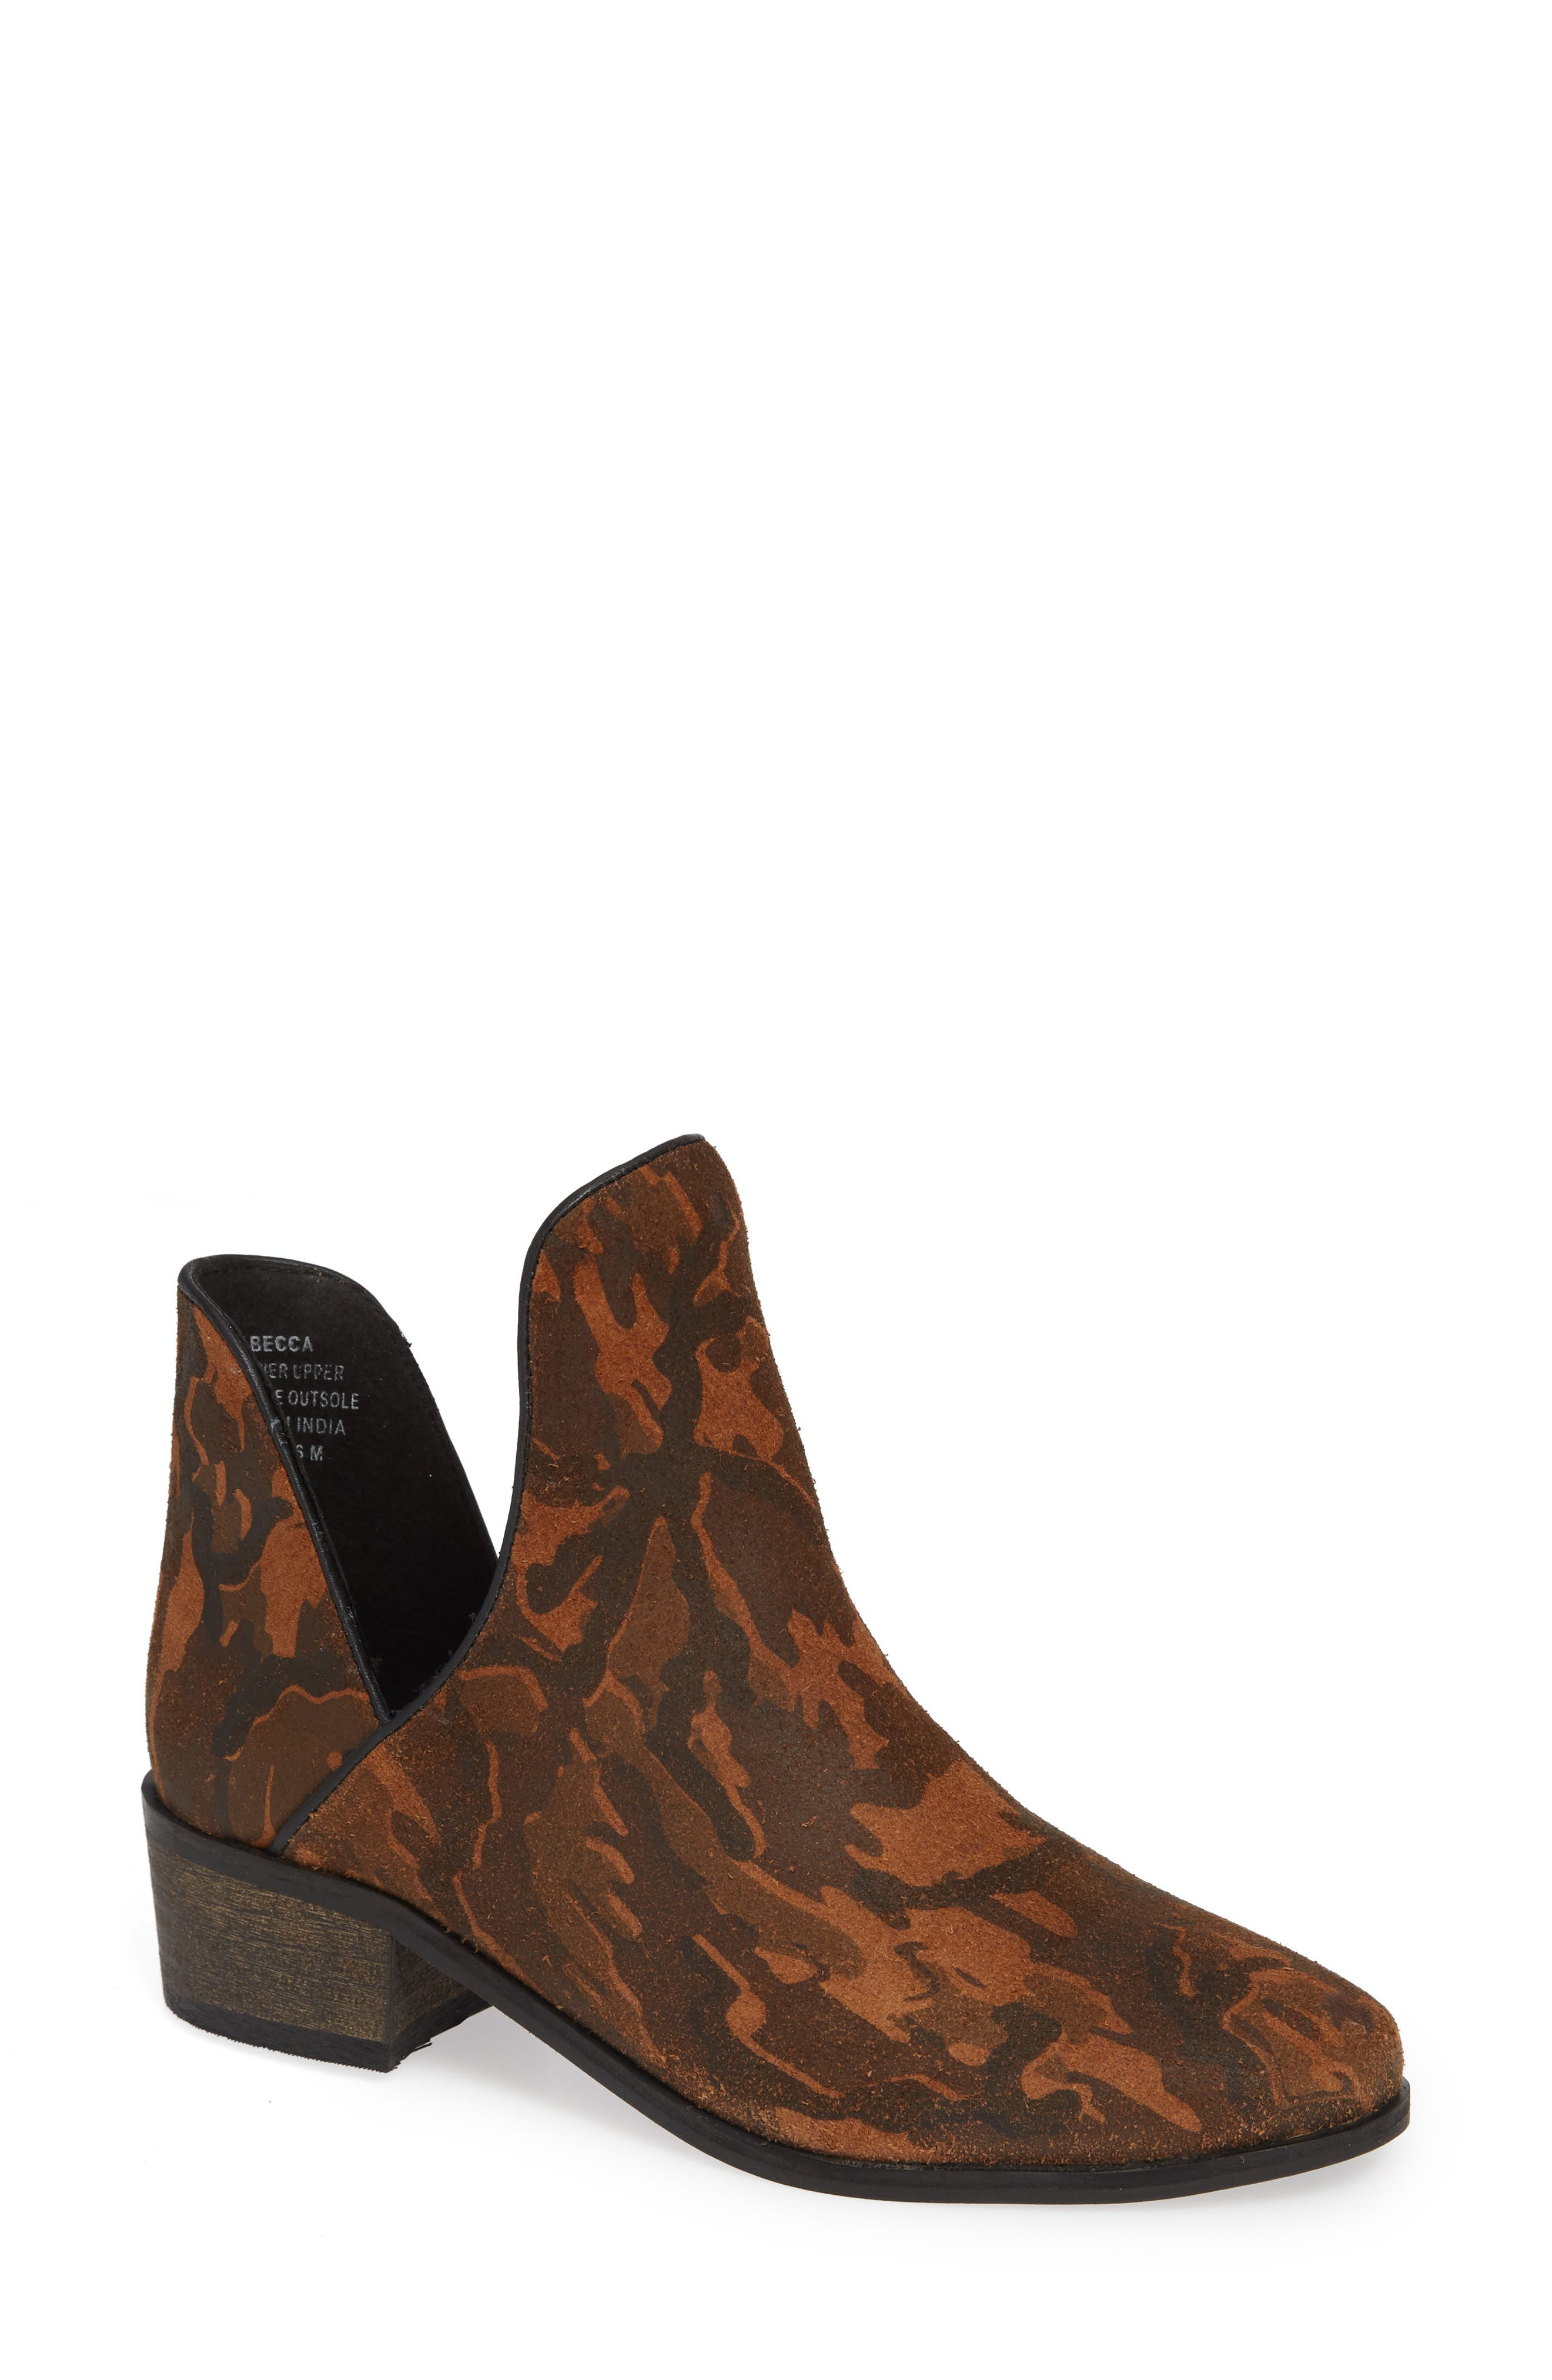 Coconuts By Matisse Becca Bootie- Brown